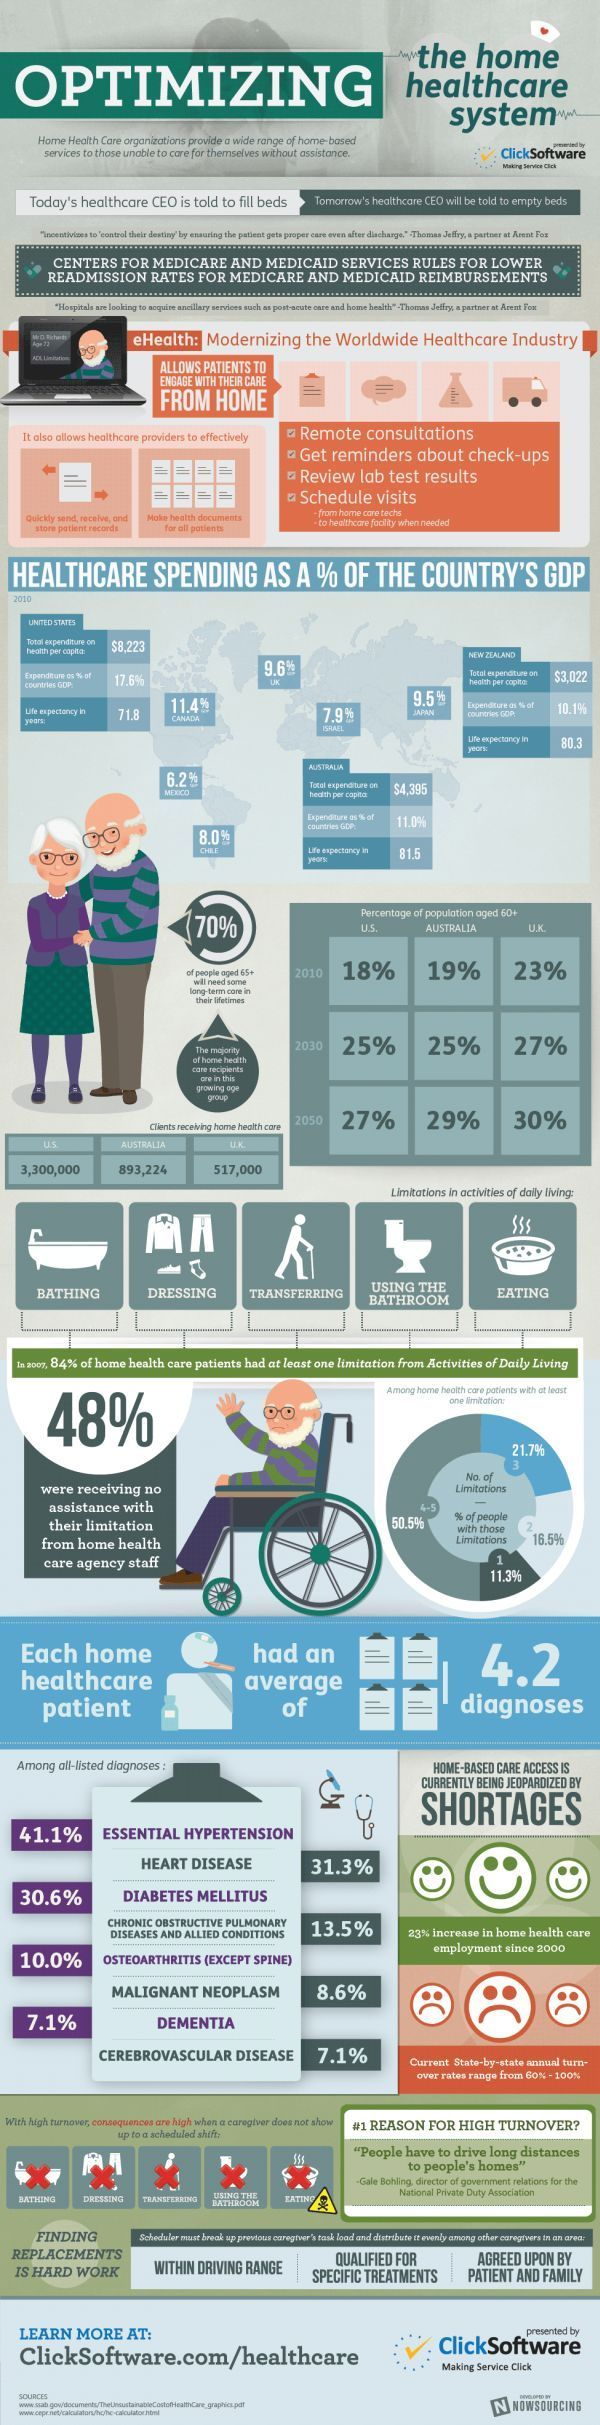 Infographic See How Ehealth Aids In Home Health Care Telemedicine